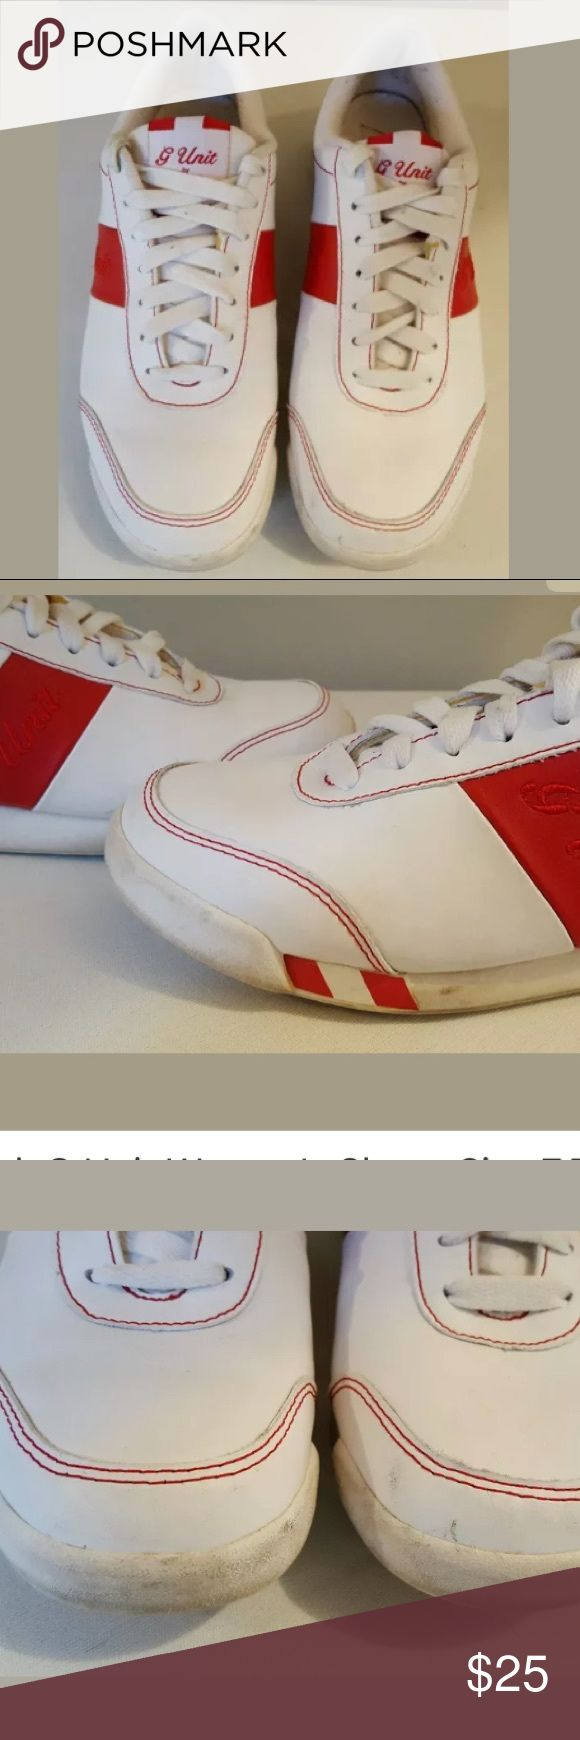 Vintage red and white Reebok G unit sneakers Good condition with minor scuffing and pilling, really cool and unique vintage look Reebok Shoes Sneakers